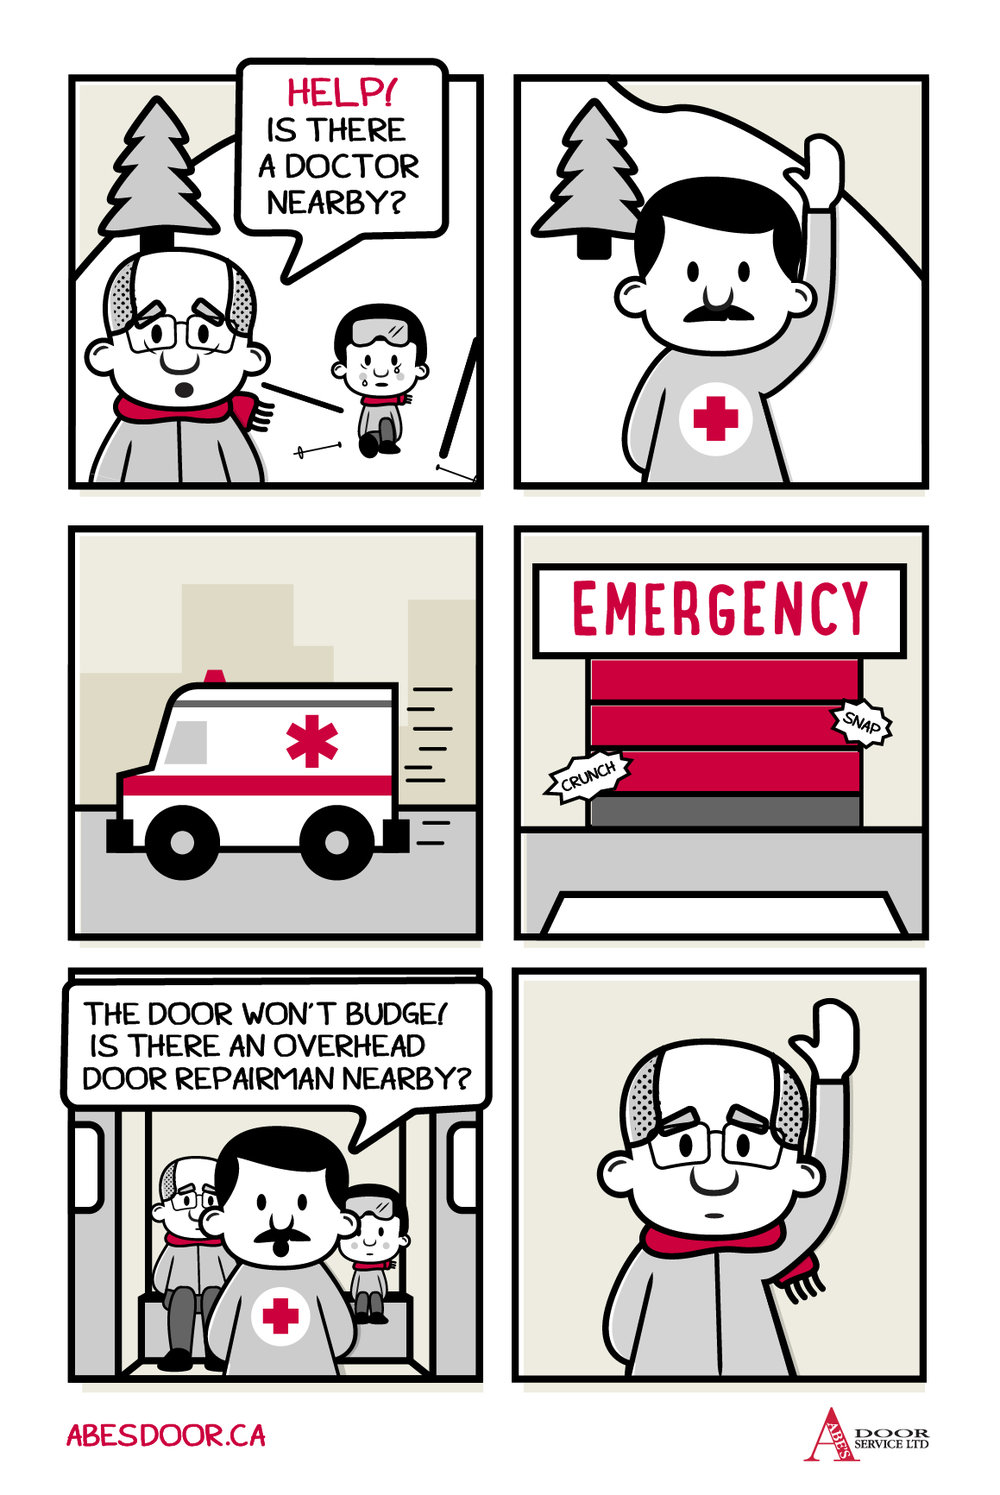 Hospital Overhead Garage Web Comic| Edmonton, Alberta | Abe's Door